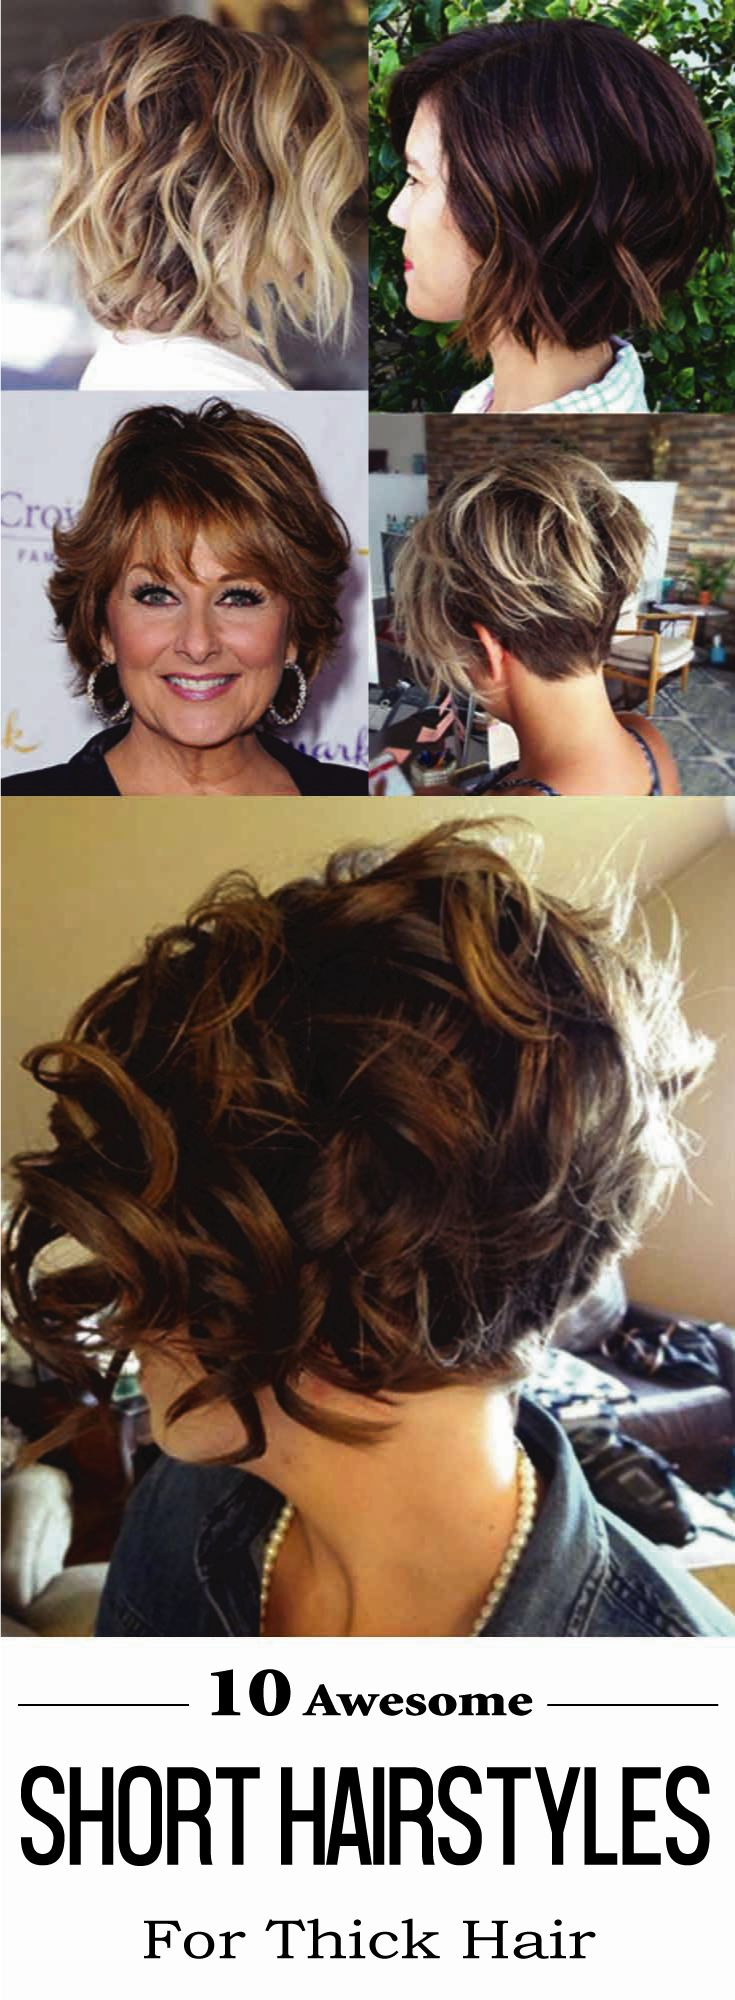 Short hairstyles are the best choice for the working women for its low maintenance feature. When you have short hairstyle and looking for something attractive and appealing have a look to these 10 Awesome Short Hairstyles For Thick Hair, the Best Short Thick Hair Styles. You can find out more by clicking here! #hairstraightenerbeauty  #shorthairstylesforthickhair  #shorthairstylesforthickhairwavy  #shorthairstylesforthickhaircurly  #shorthairstylesforthickhairpixie